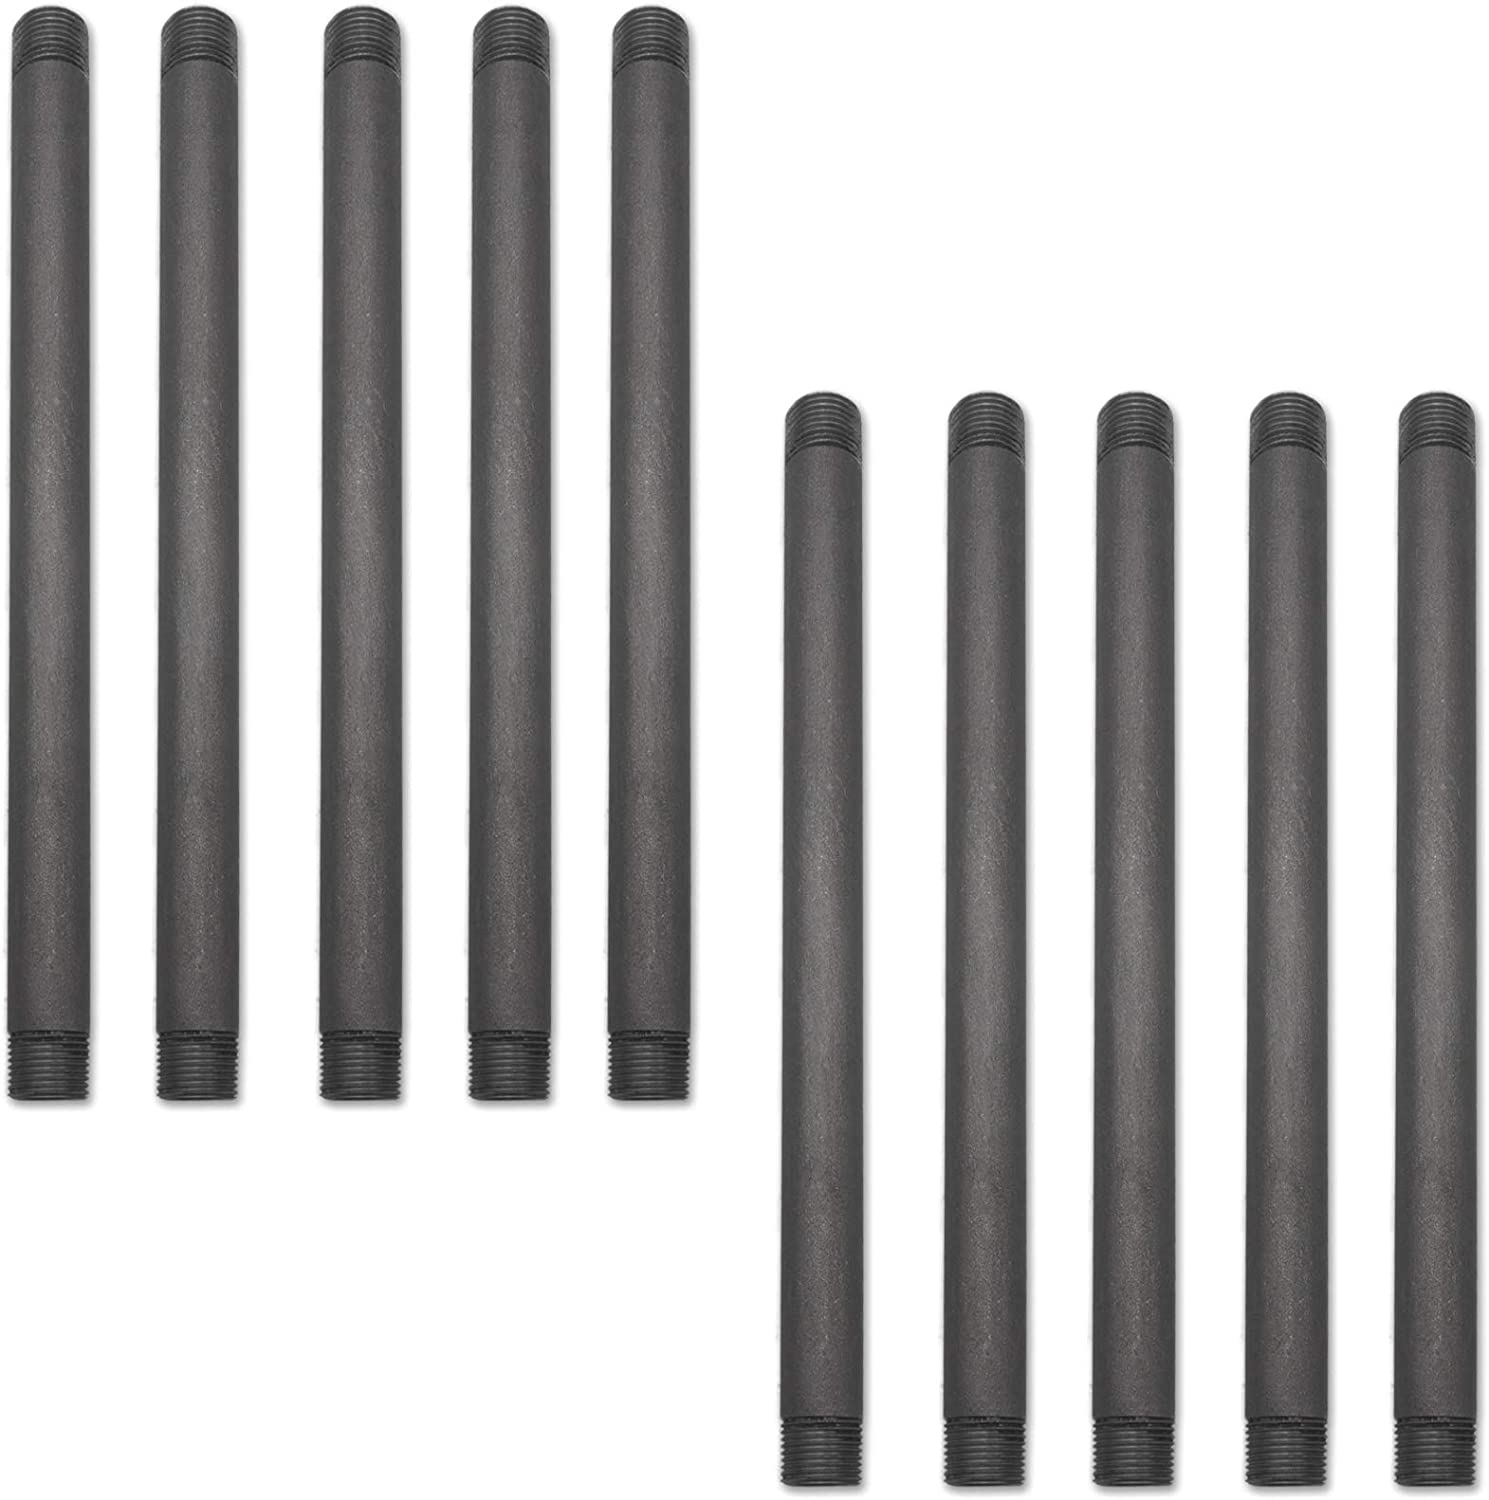 10 Pack Brooklyn Pipe Sandblast Finish 3//4 x 6 Inch Heavy Duty Furniture Grade Steel Pipe for DIY Shelving and Home Decor Projects